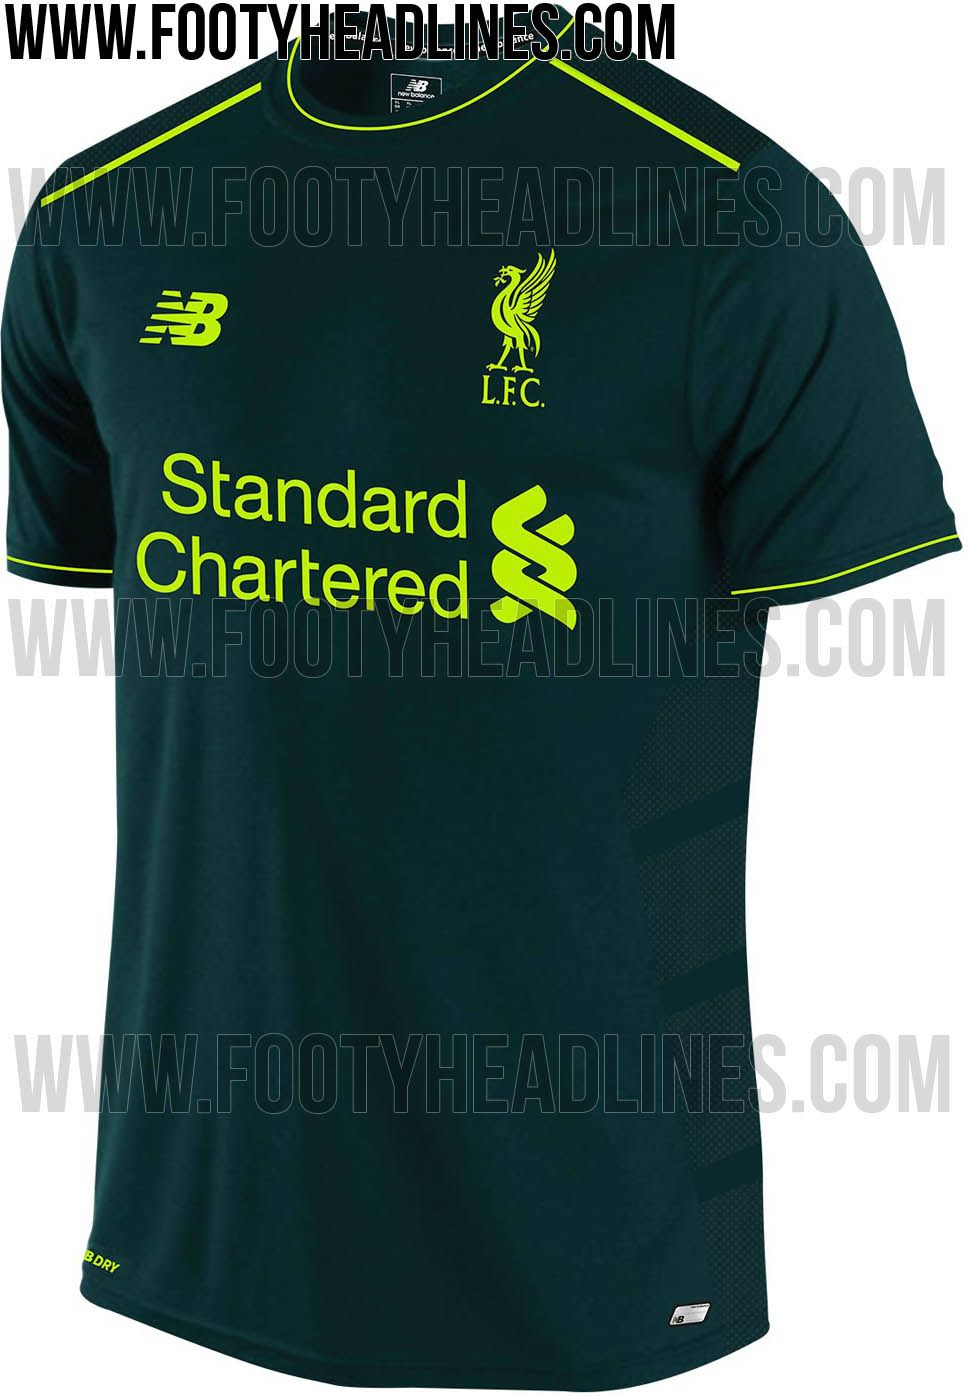 Liverpool 16-17 Third Kit Leaked - Footy Headlines  07fedc37f